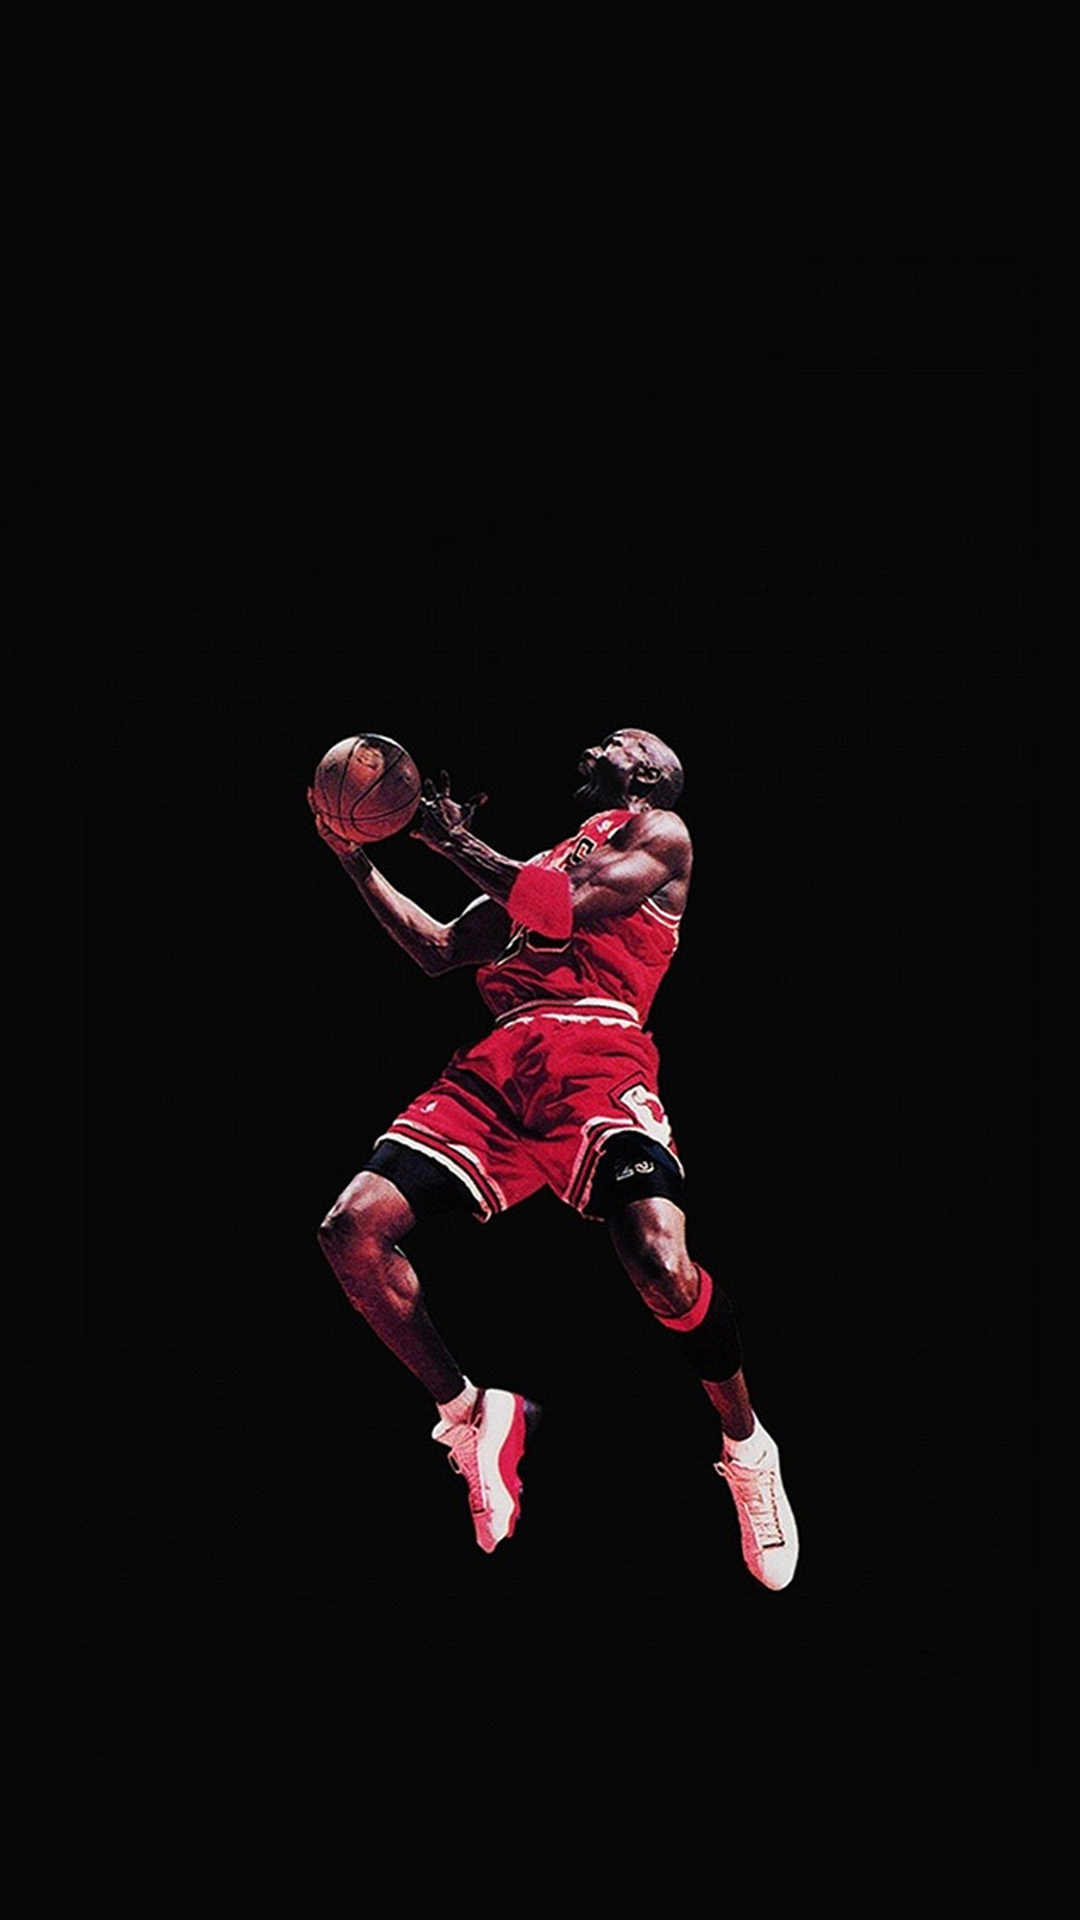 Iphone Jordan 1 Wallpaper Hd